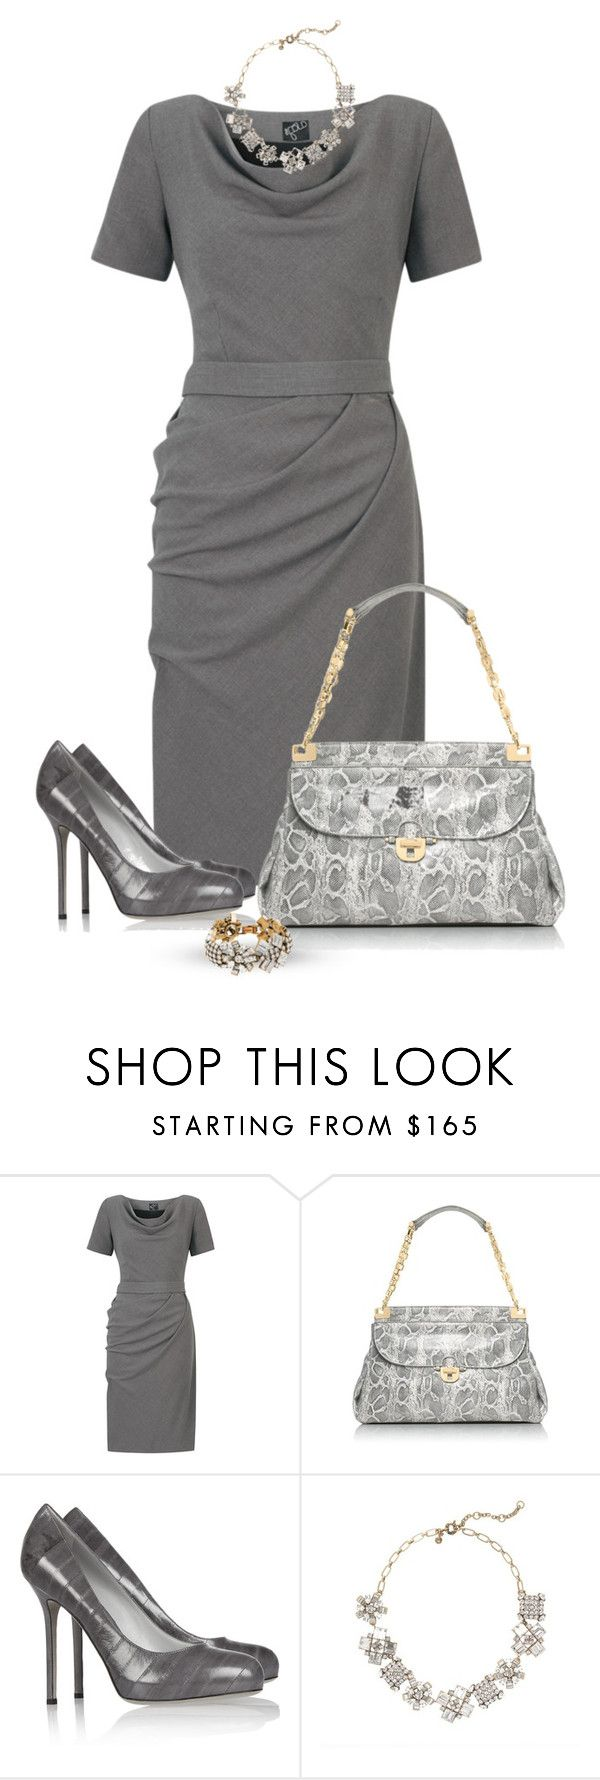 """Gray dress"" by marincounty ❤ liked on Polyvore featuring Tory Burch, Sergio Rossi and J.Crew"